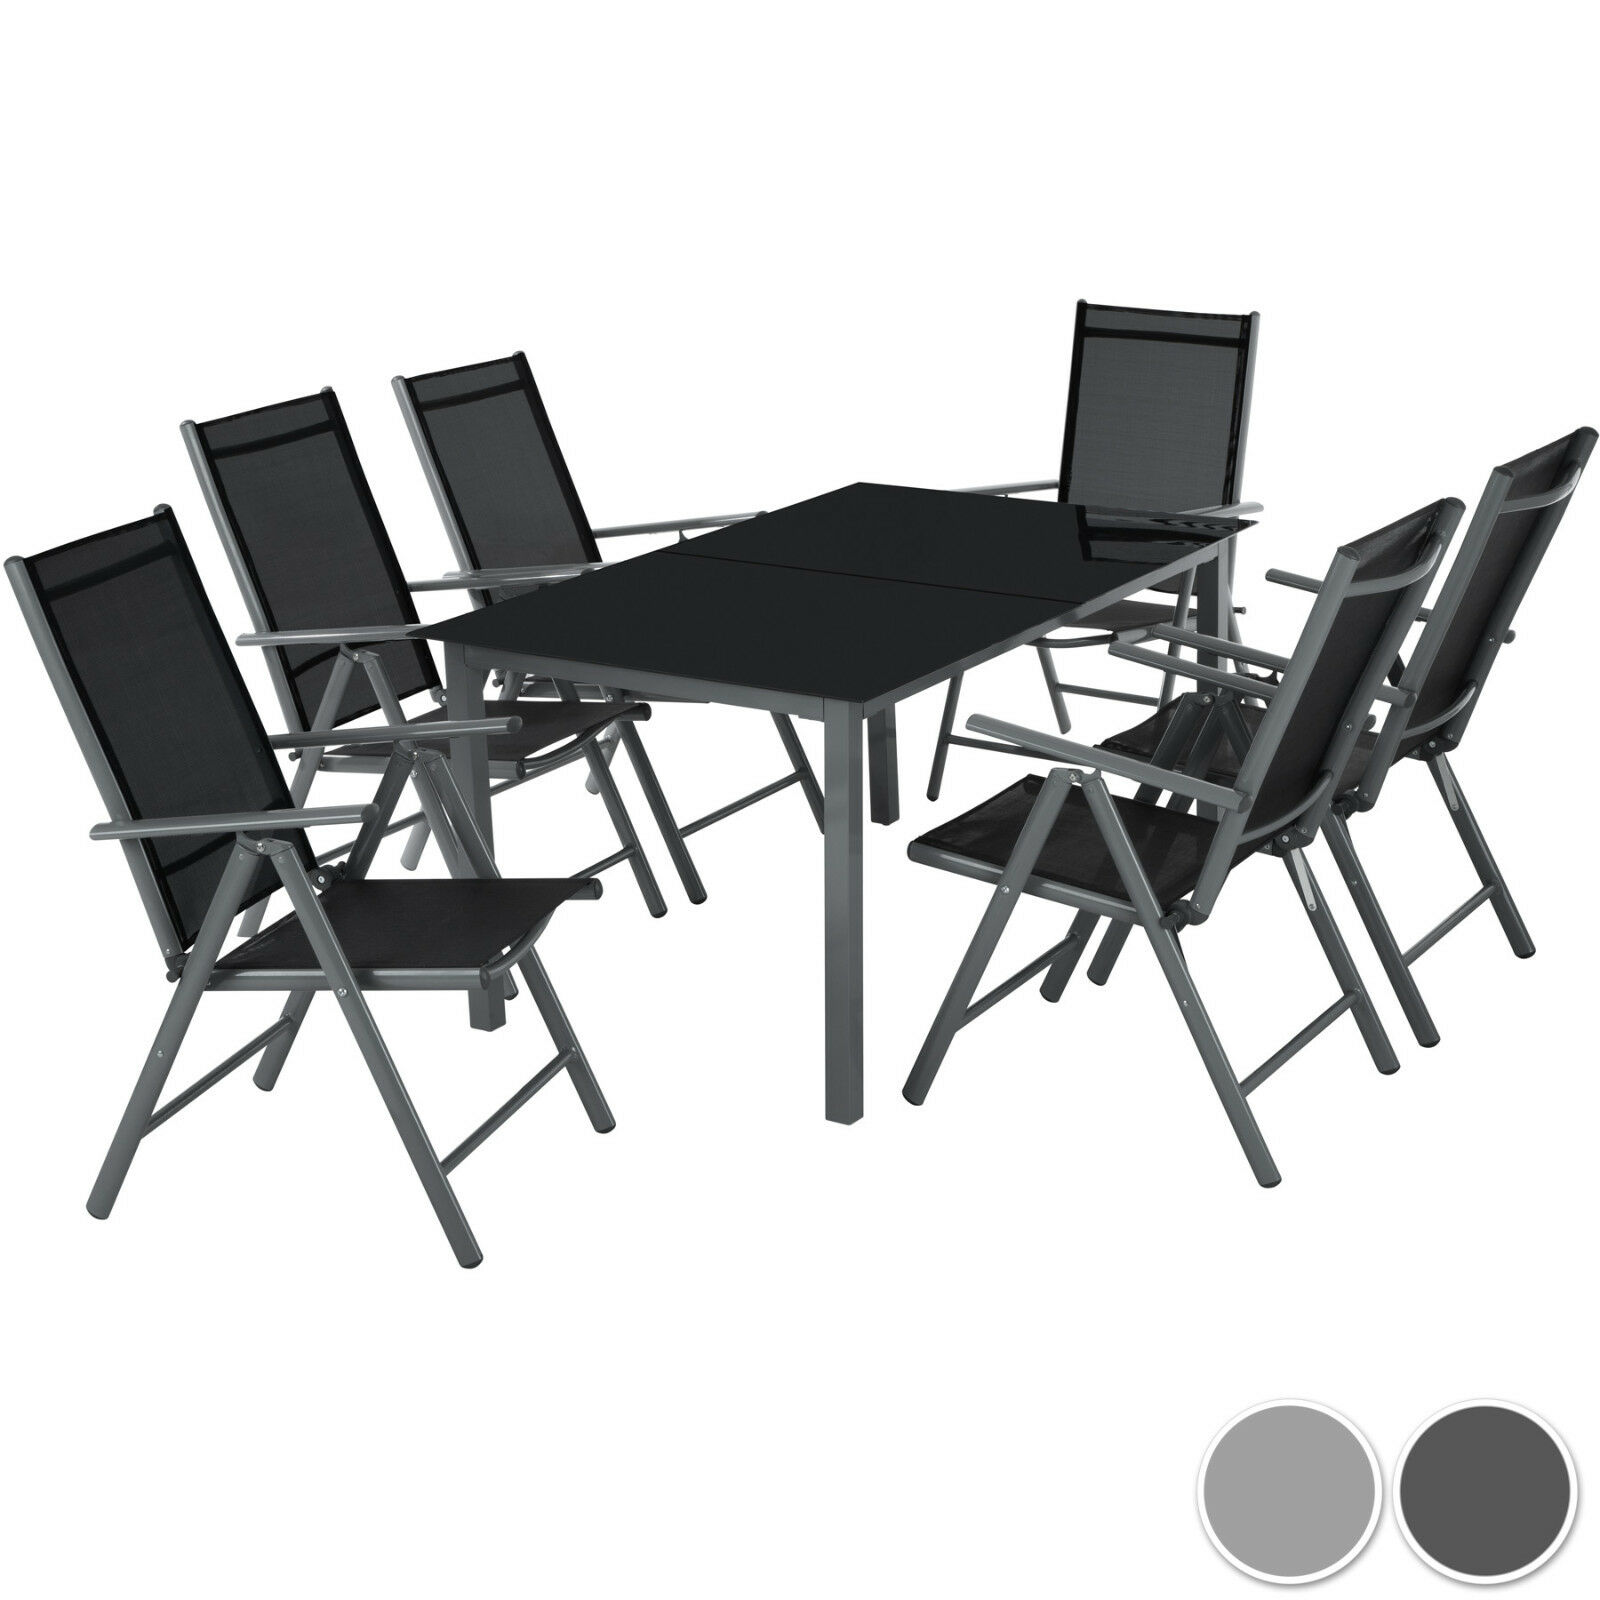 6 1 alu sitzgruppe gartenm bel gartengarnitur tisch stuhl essgruppe gartenset eur 249 99. Black Bedroom Furniture Sets. Home Design Ideas